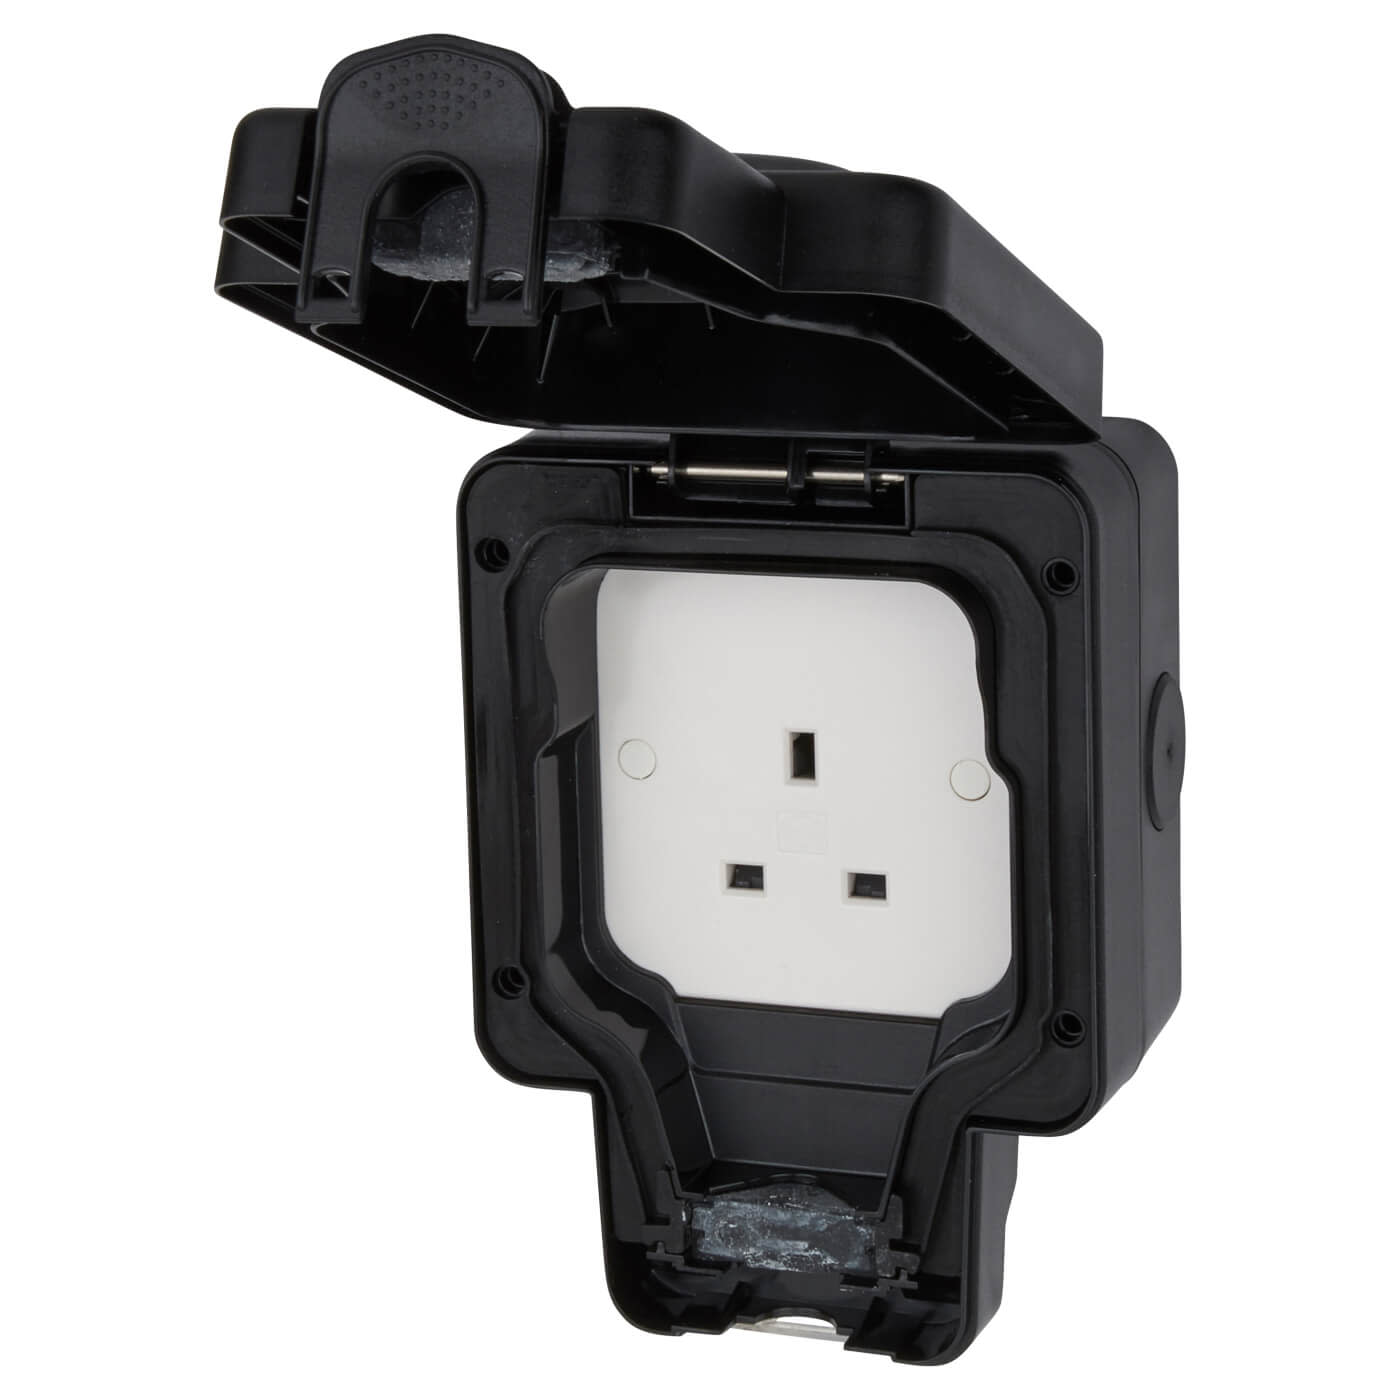 MK Masterseal Plus 13A IP66 1 Gang Weatherproof Unswitched Outdoor Socket - Black)